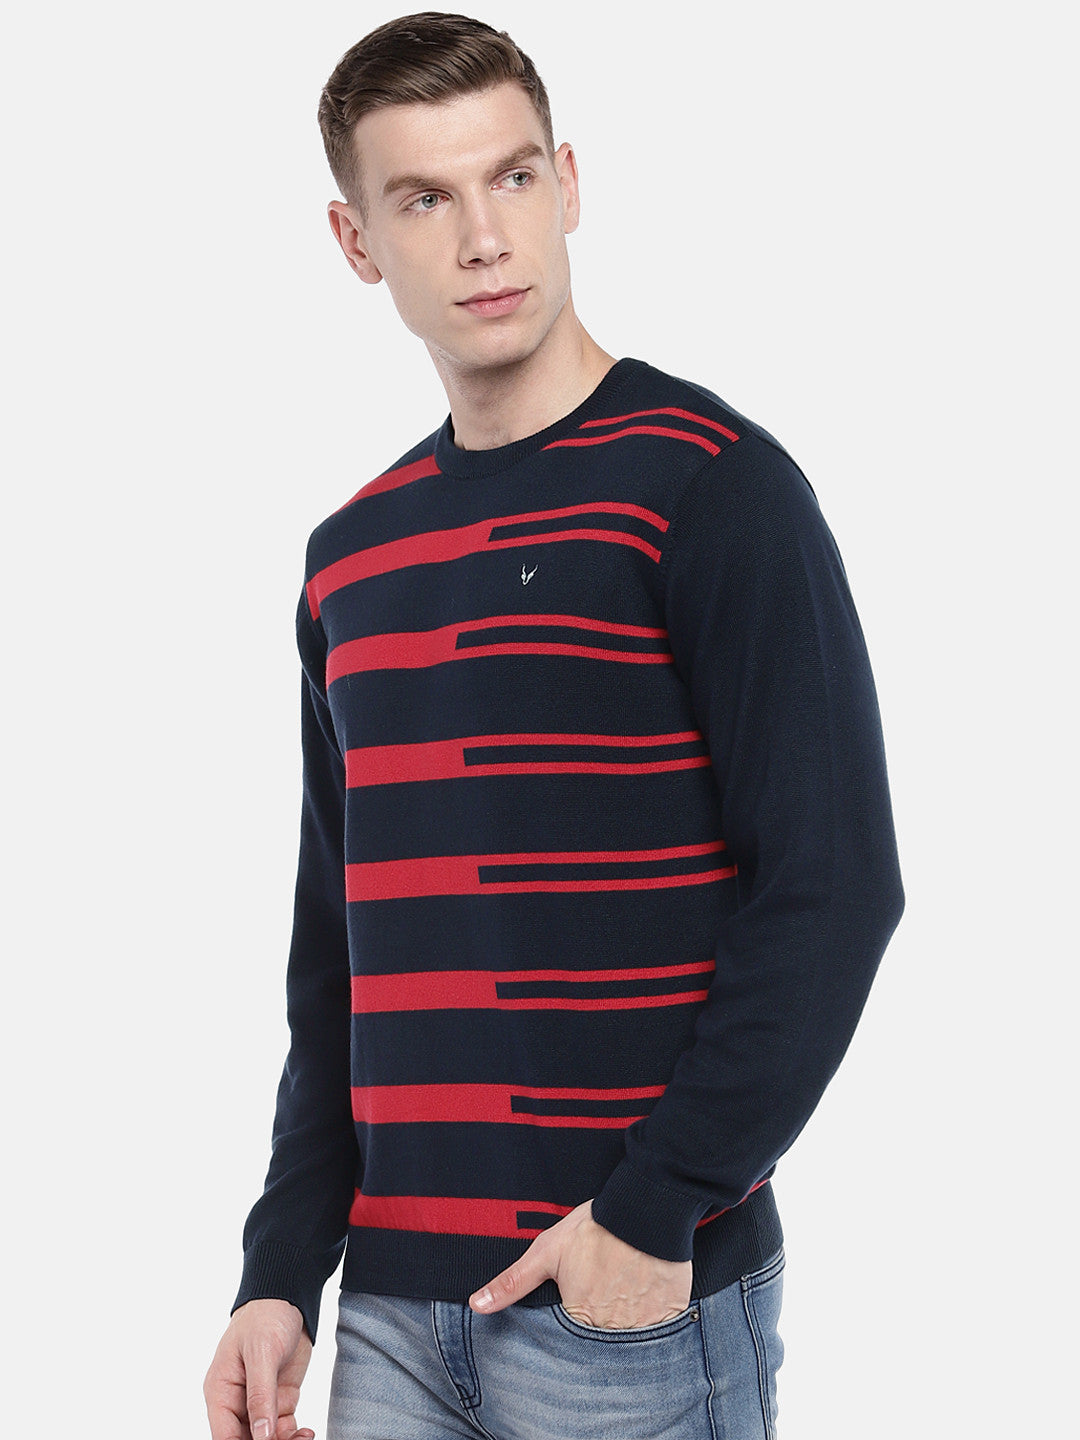 Navy Blue & Red Striped Pullover Sweater-2